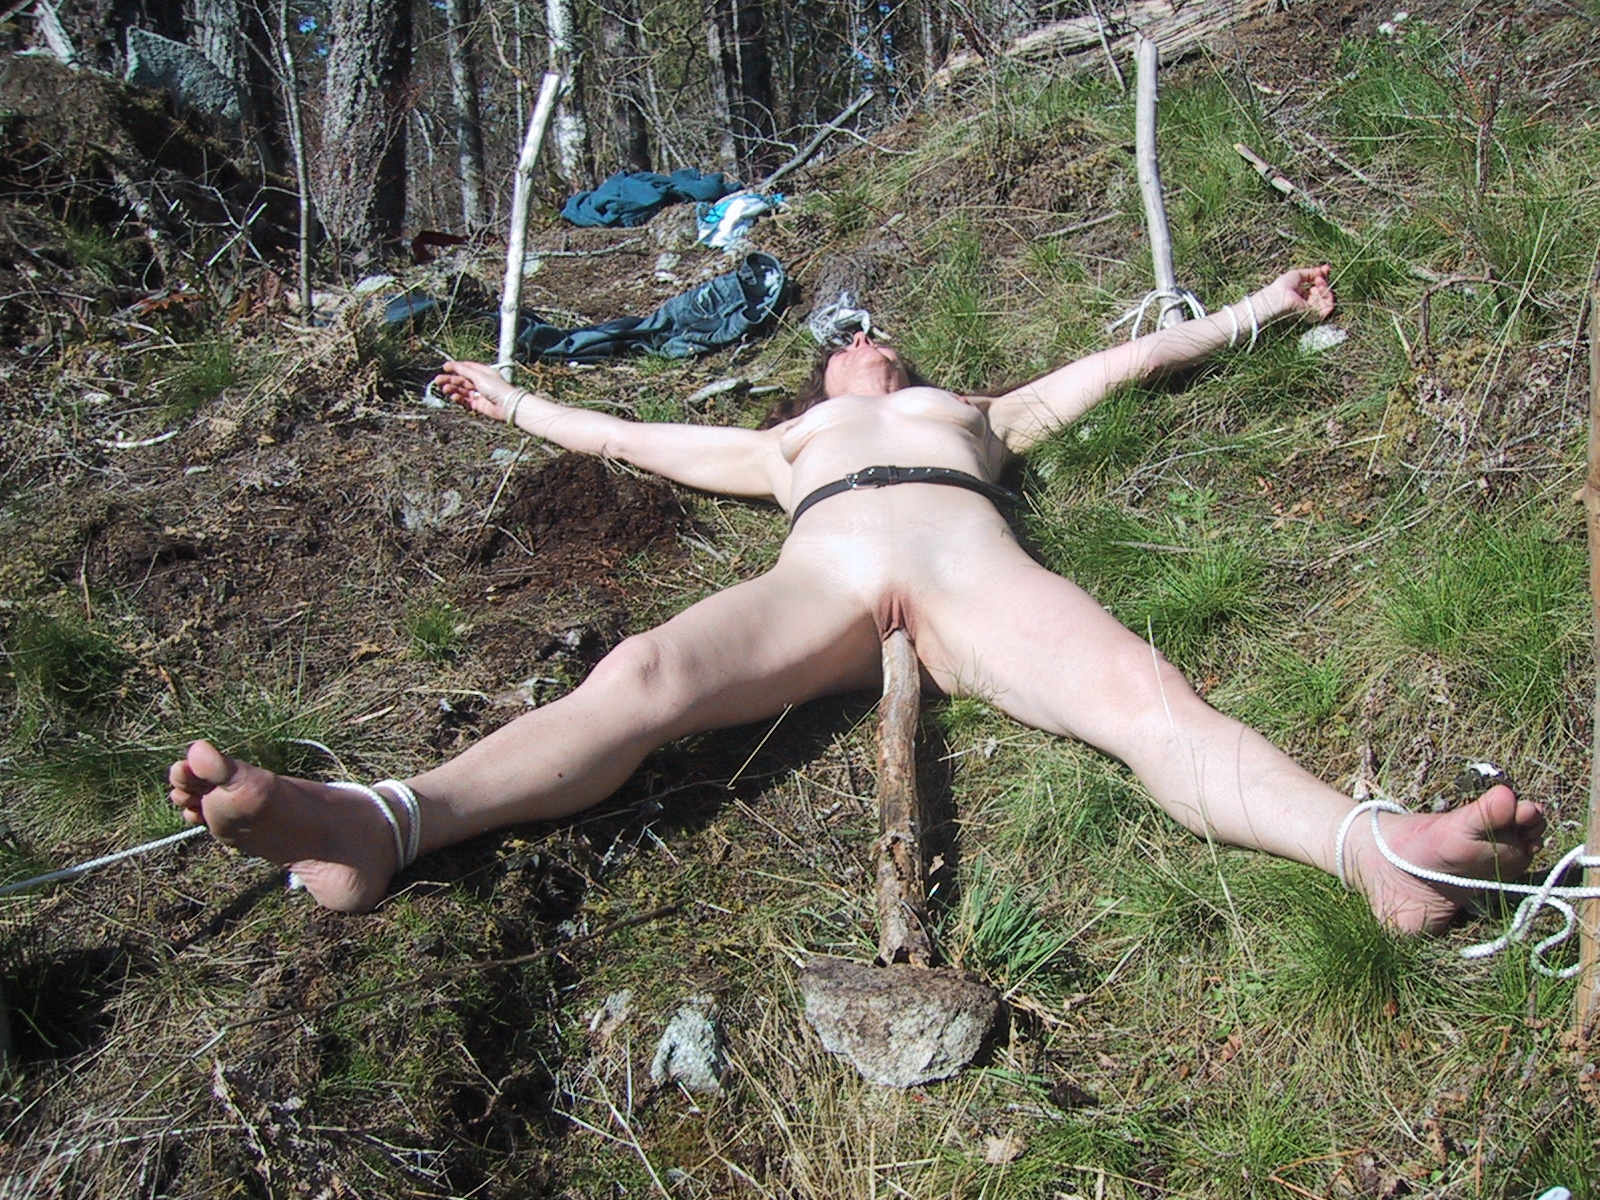 Women doing striptease outdoors